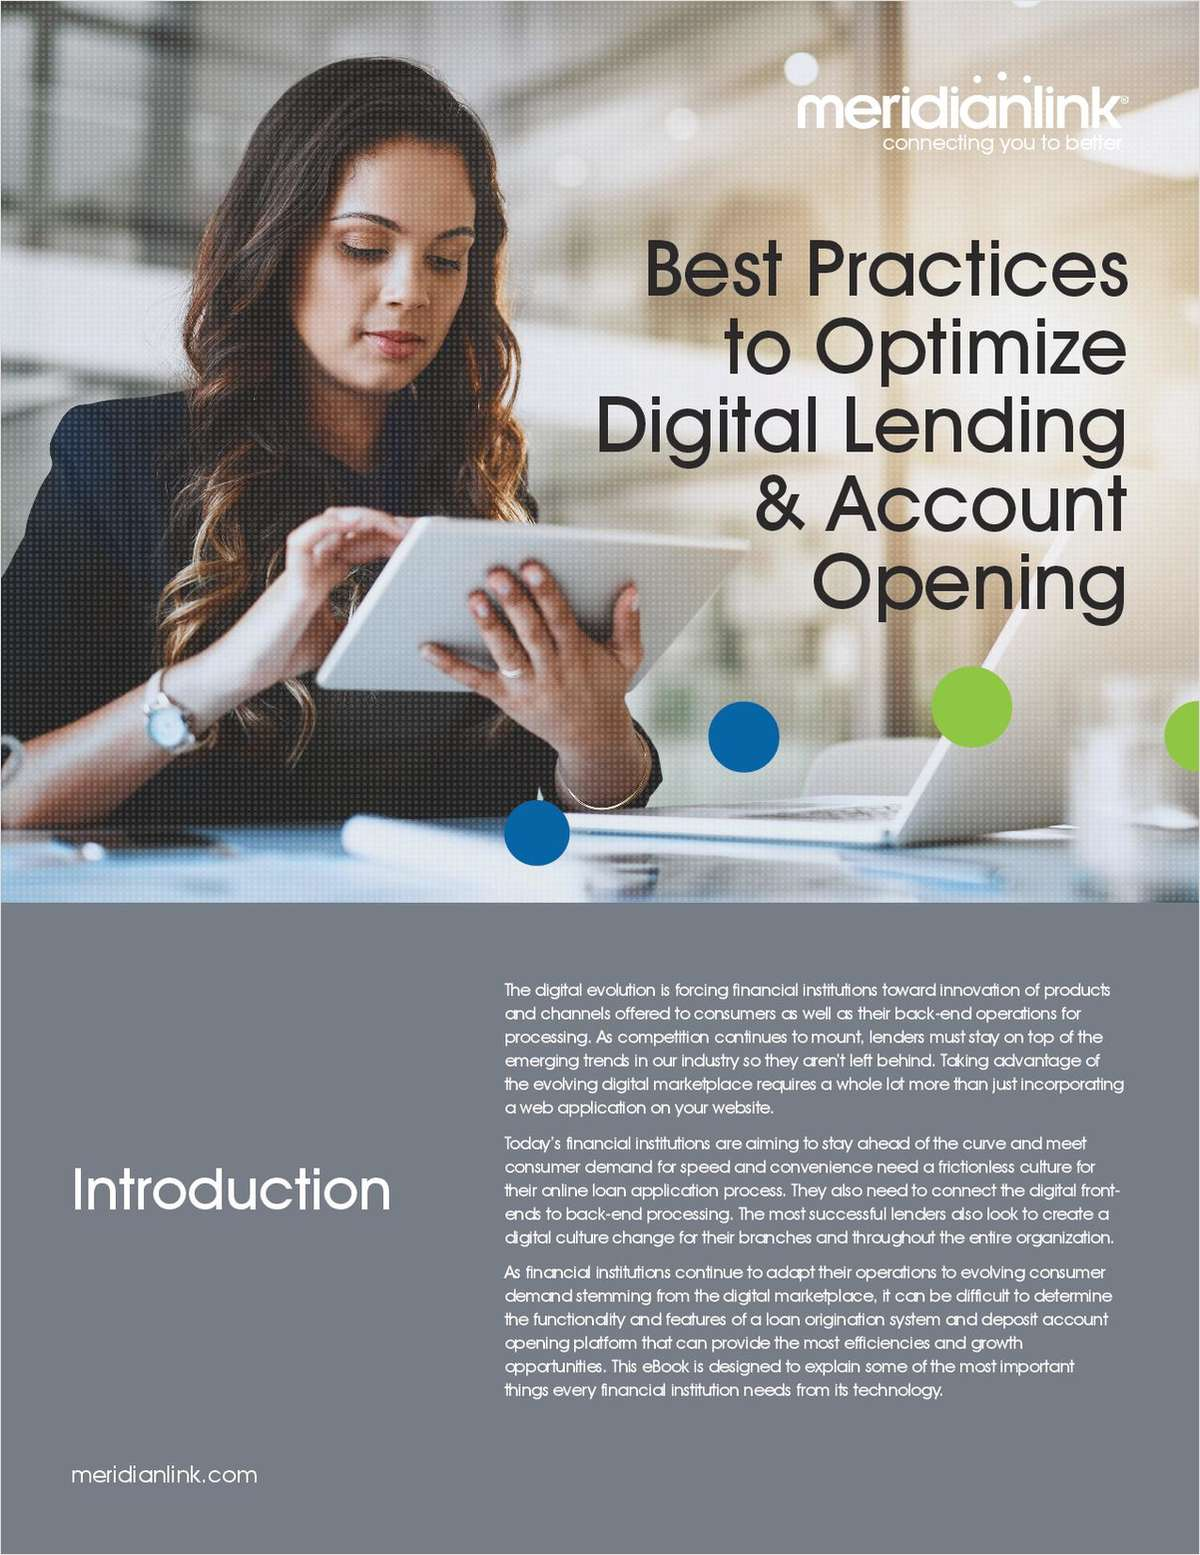 Best Practices to Optimize Digital Lending & Account Opening